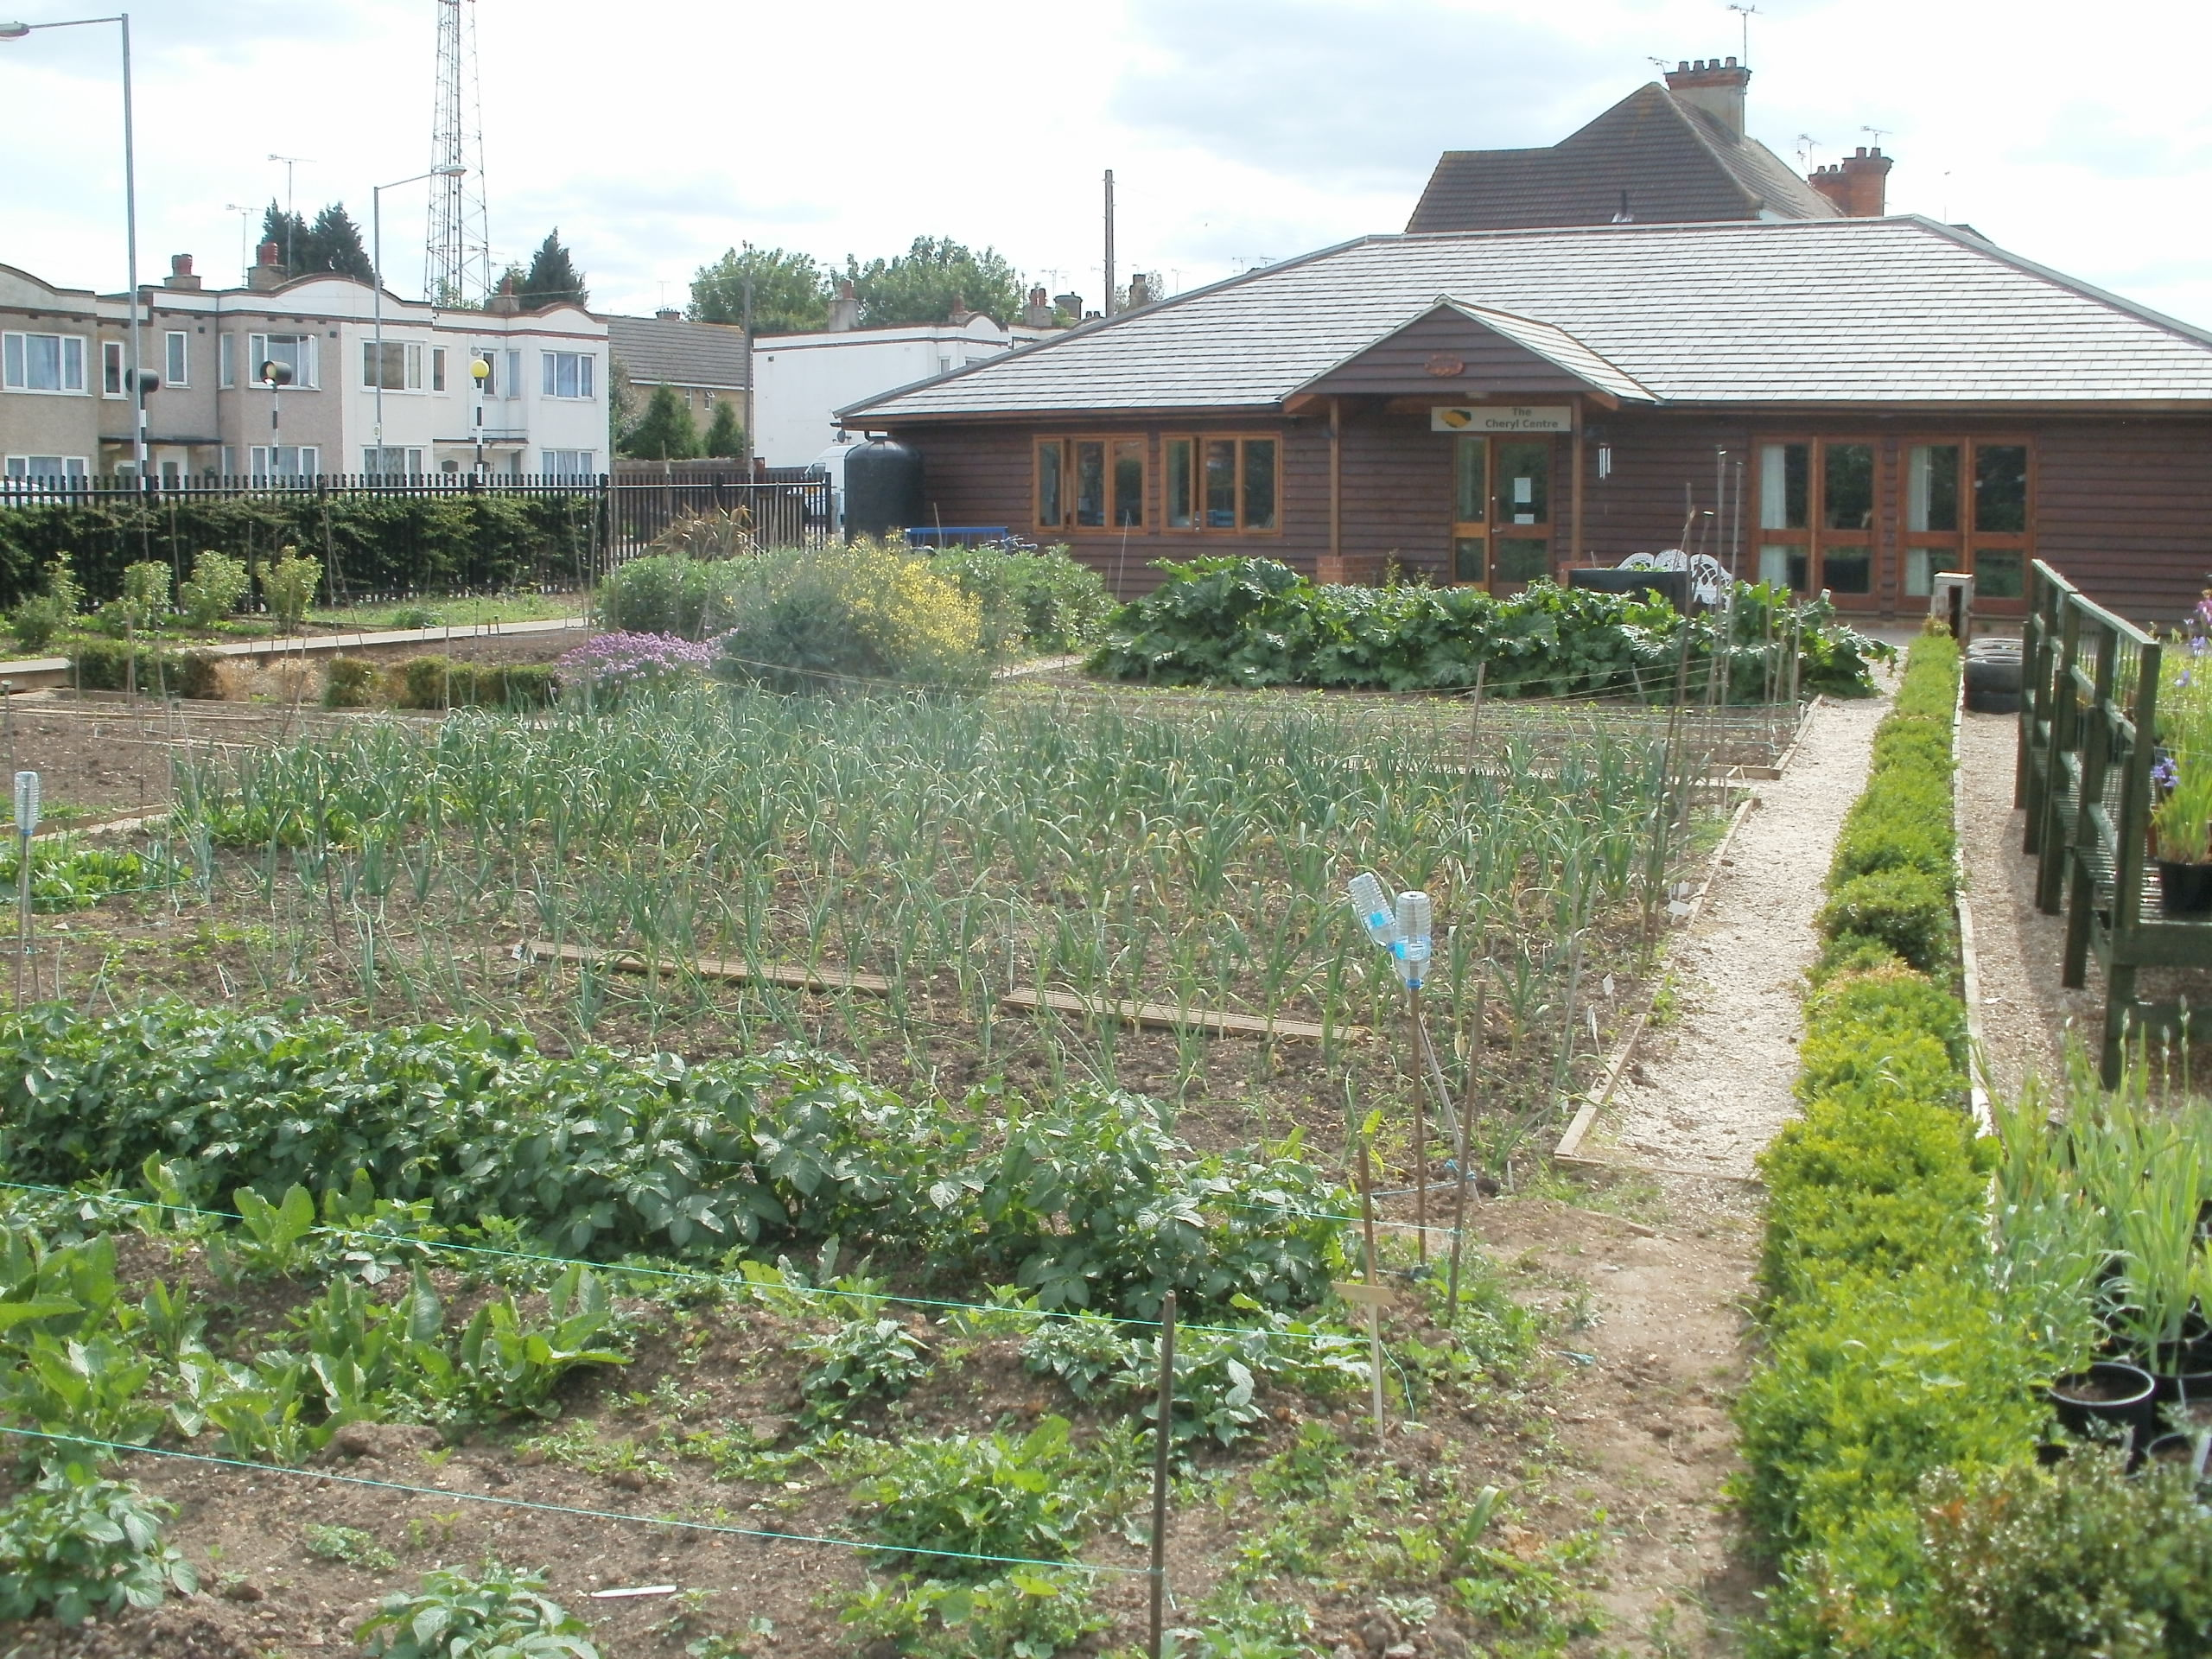 Growing Together Westcliff with new allotments in 2011